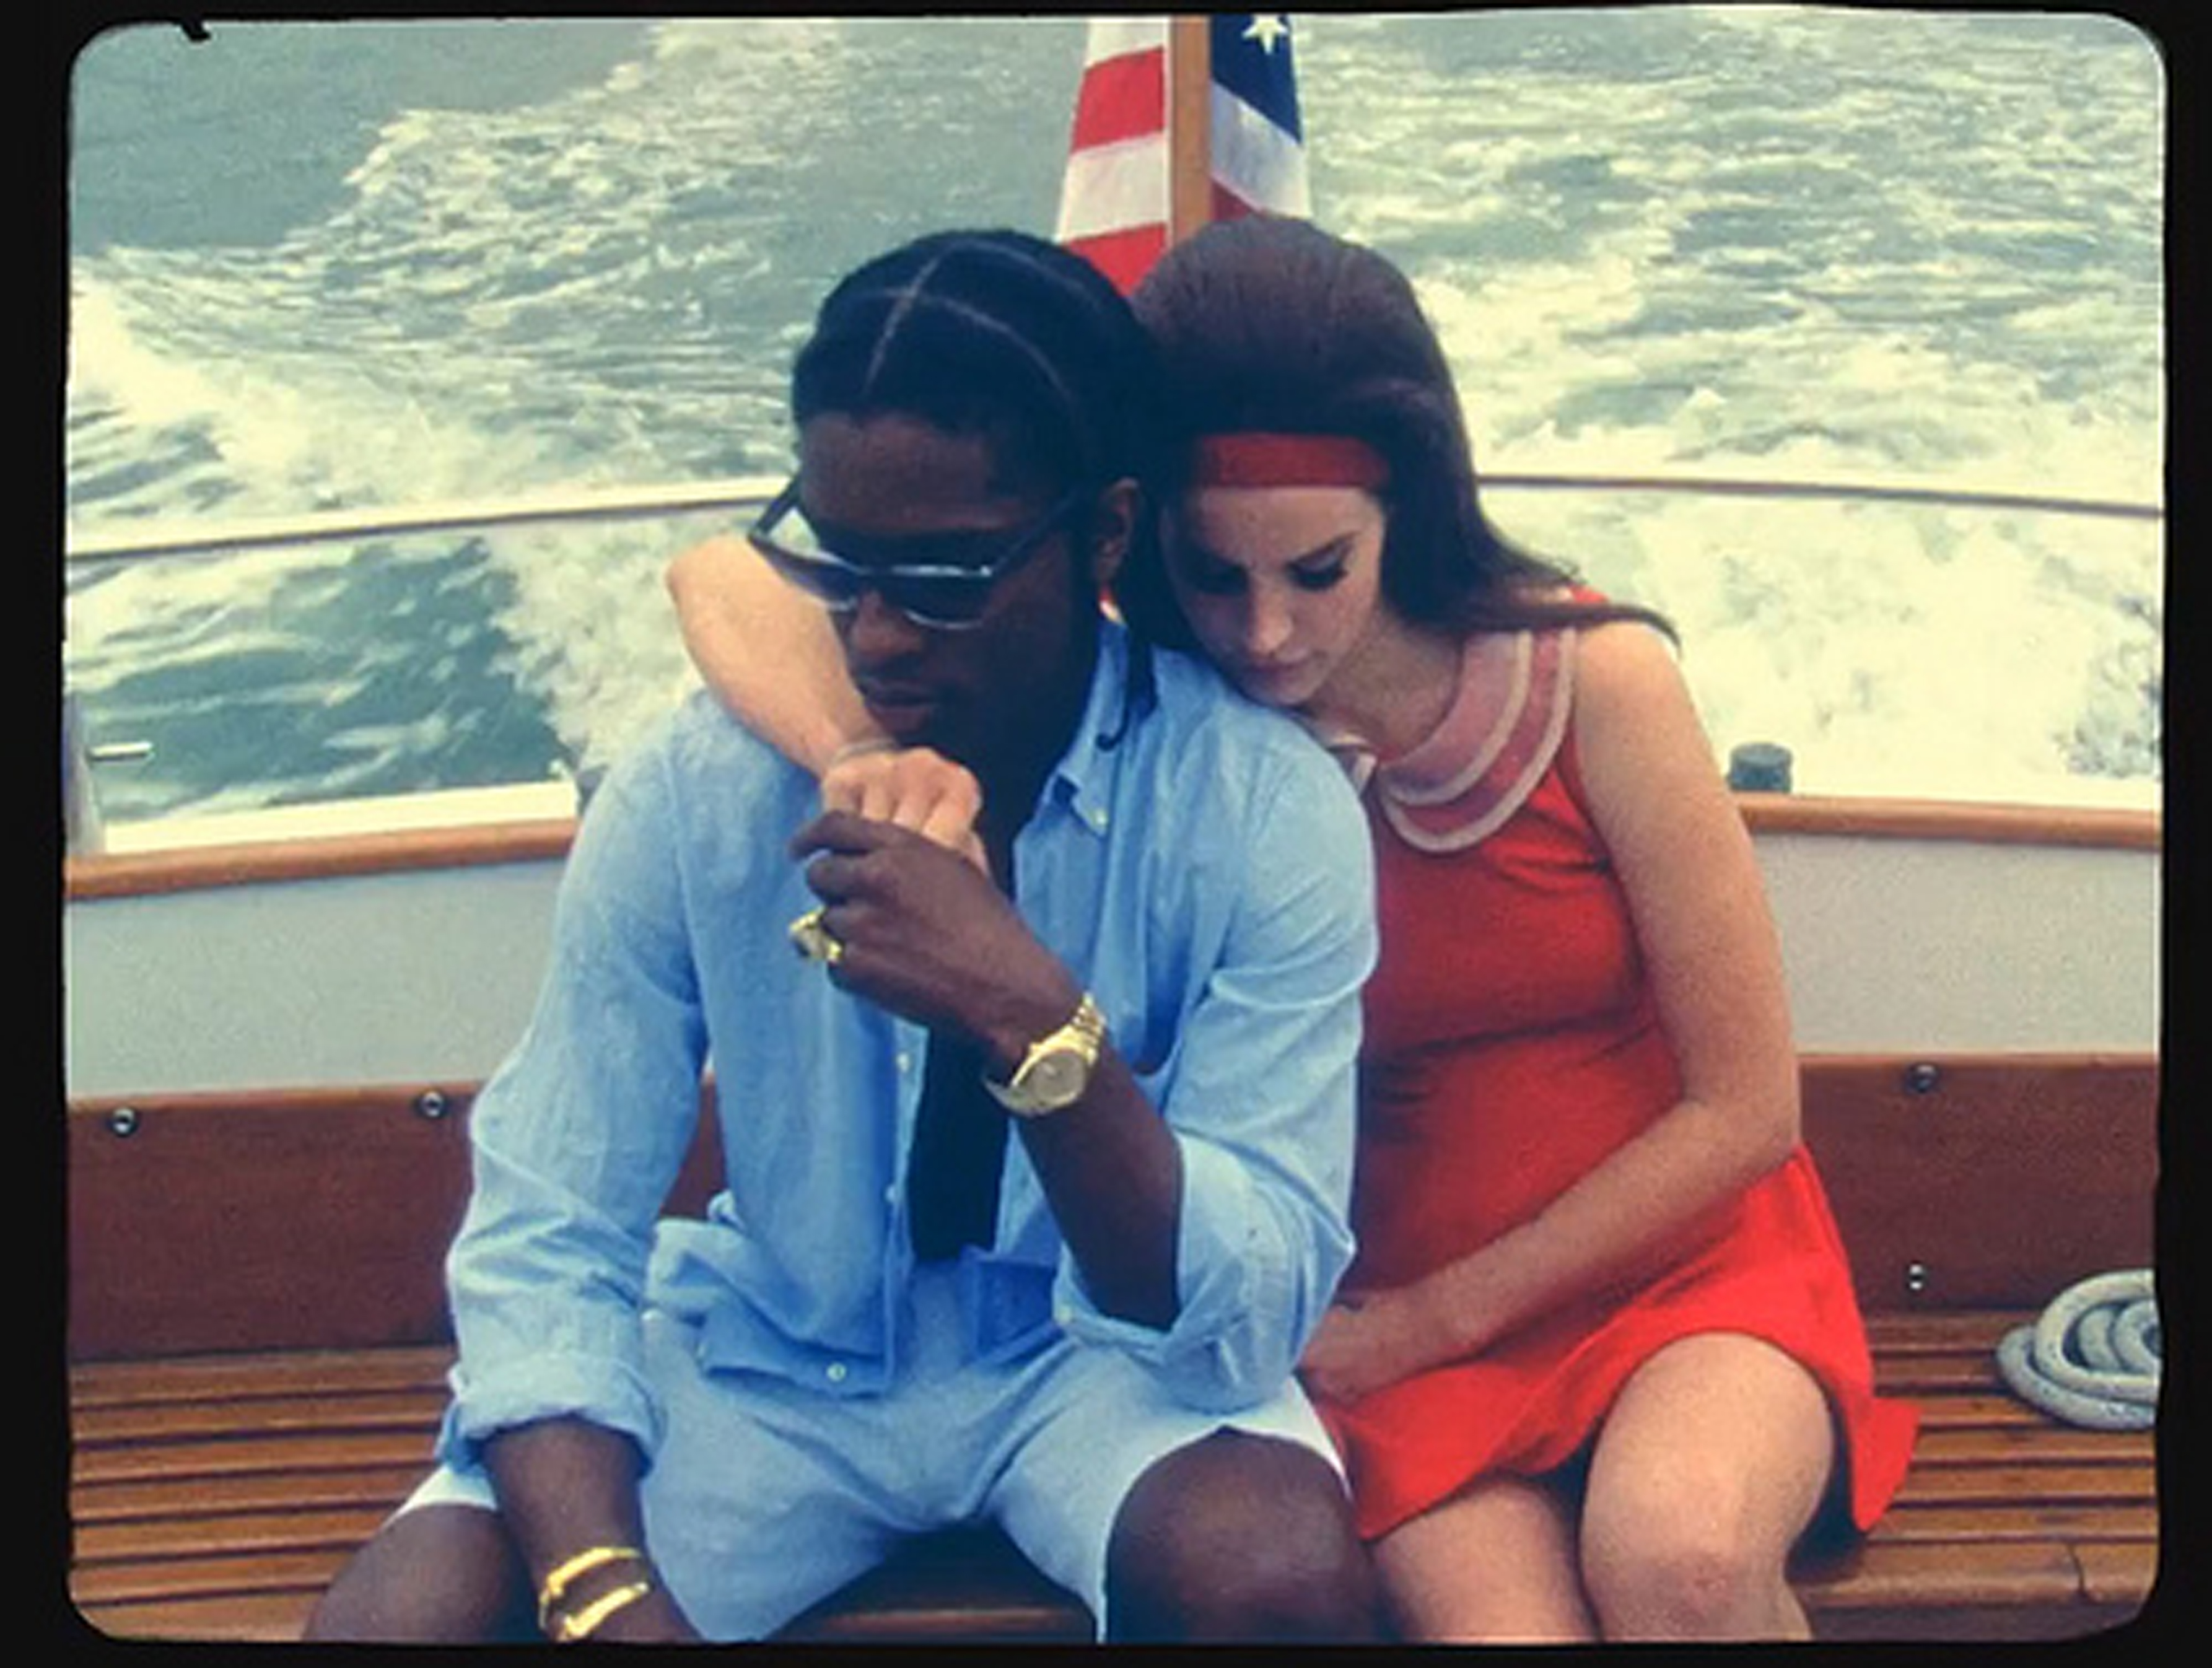 lana del rey and asap rocky relationship